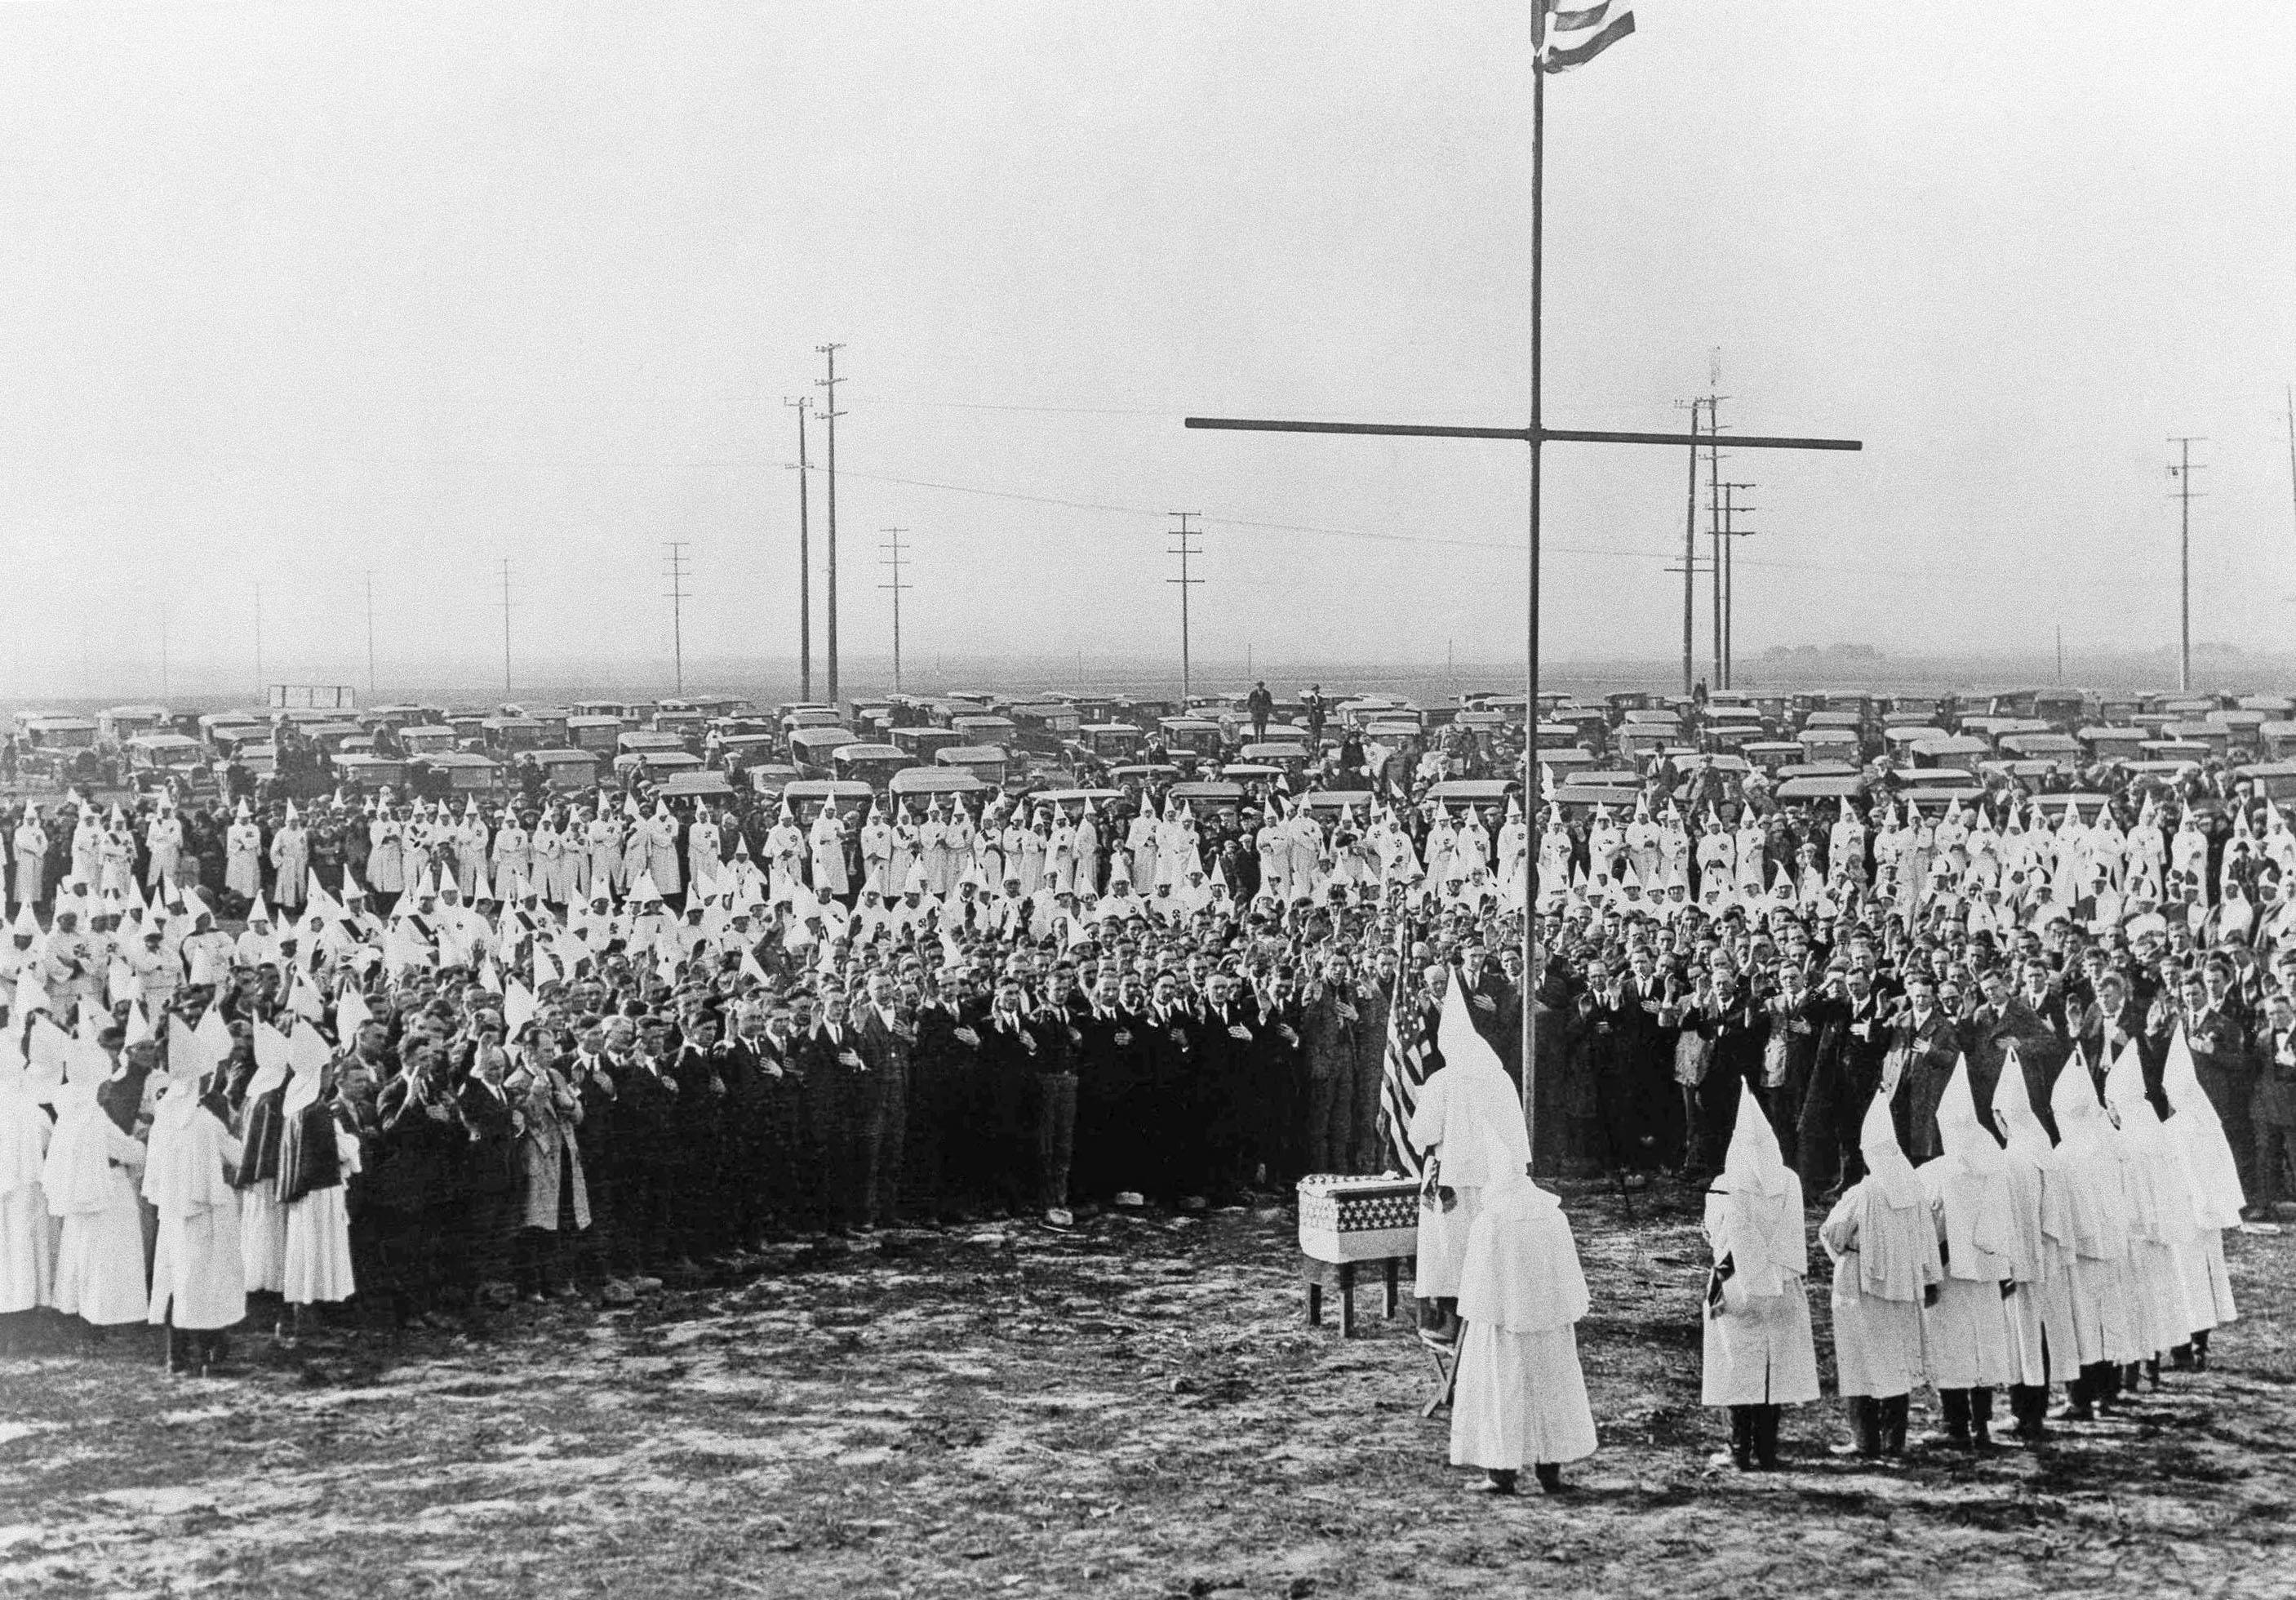 In this Feb. 13, 1925, file photo, Ku Klux Klan members hold a ceremonial meeting near Los Angeles.